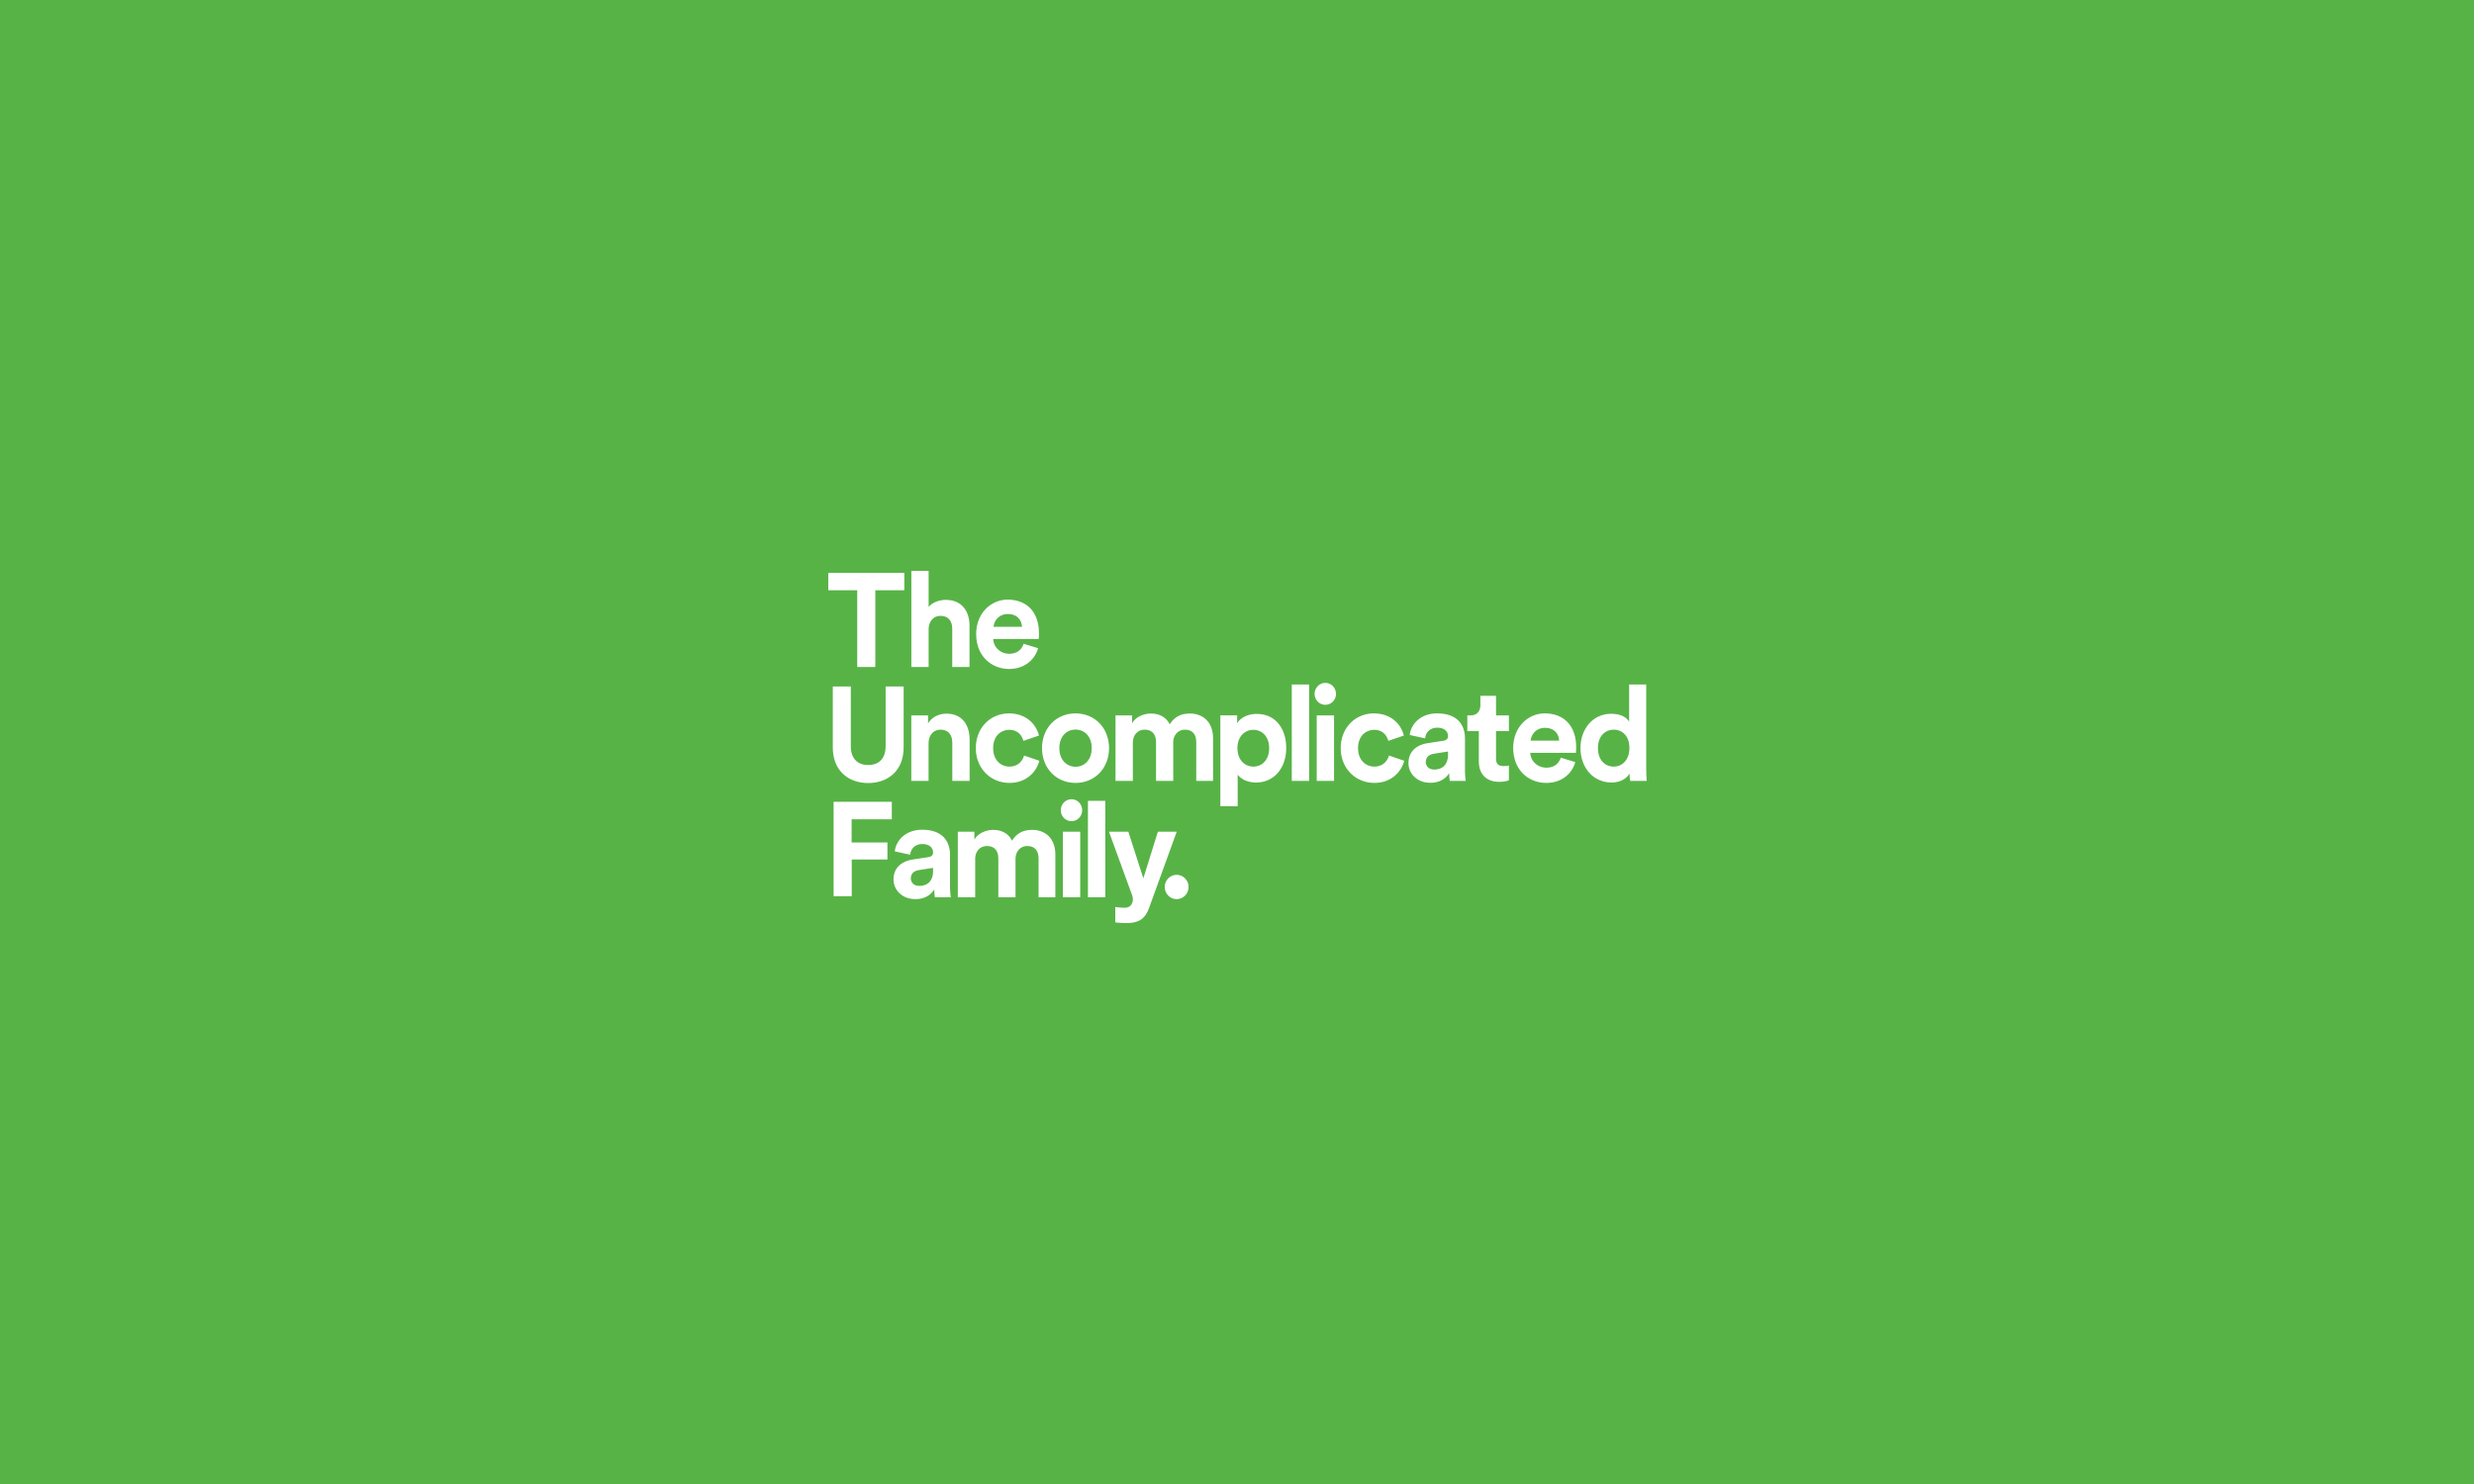 THE UNCOMPLICATED FAMILY™ GROUP OFFERS DIGITAL HEALTHCARE DELIVERY SOLUTIONS AMID COVID-19 OUTBREAK